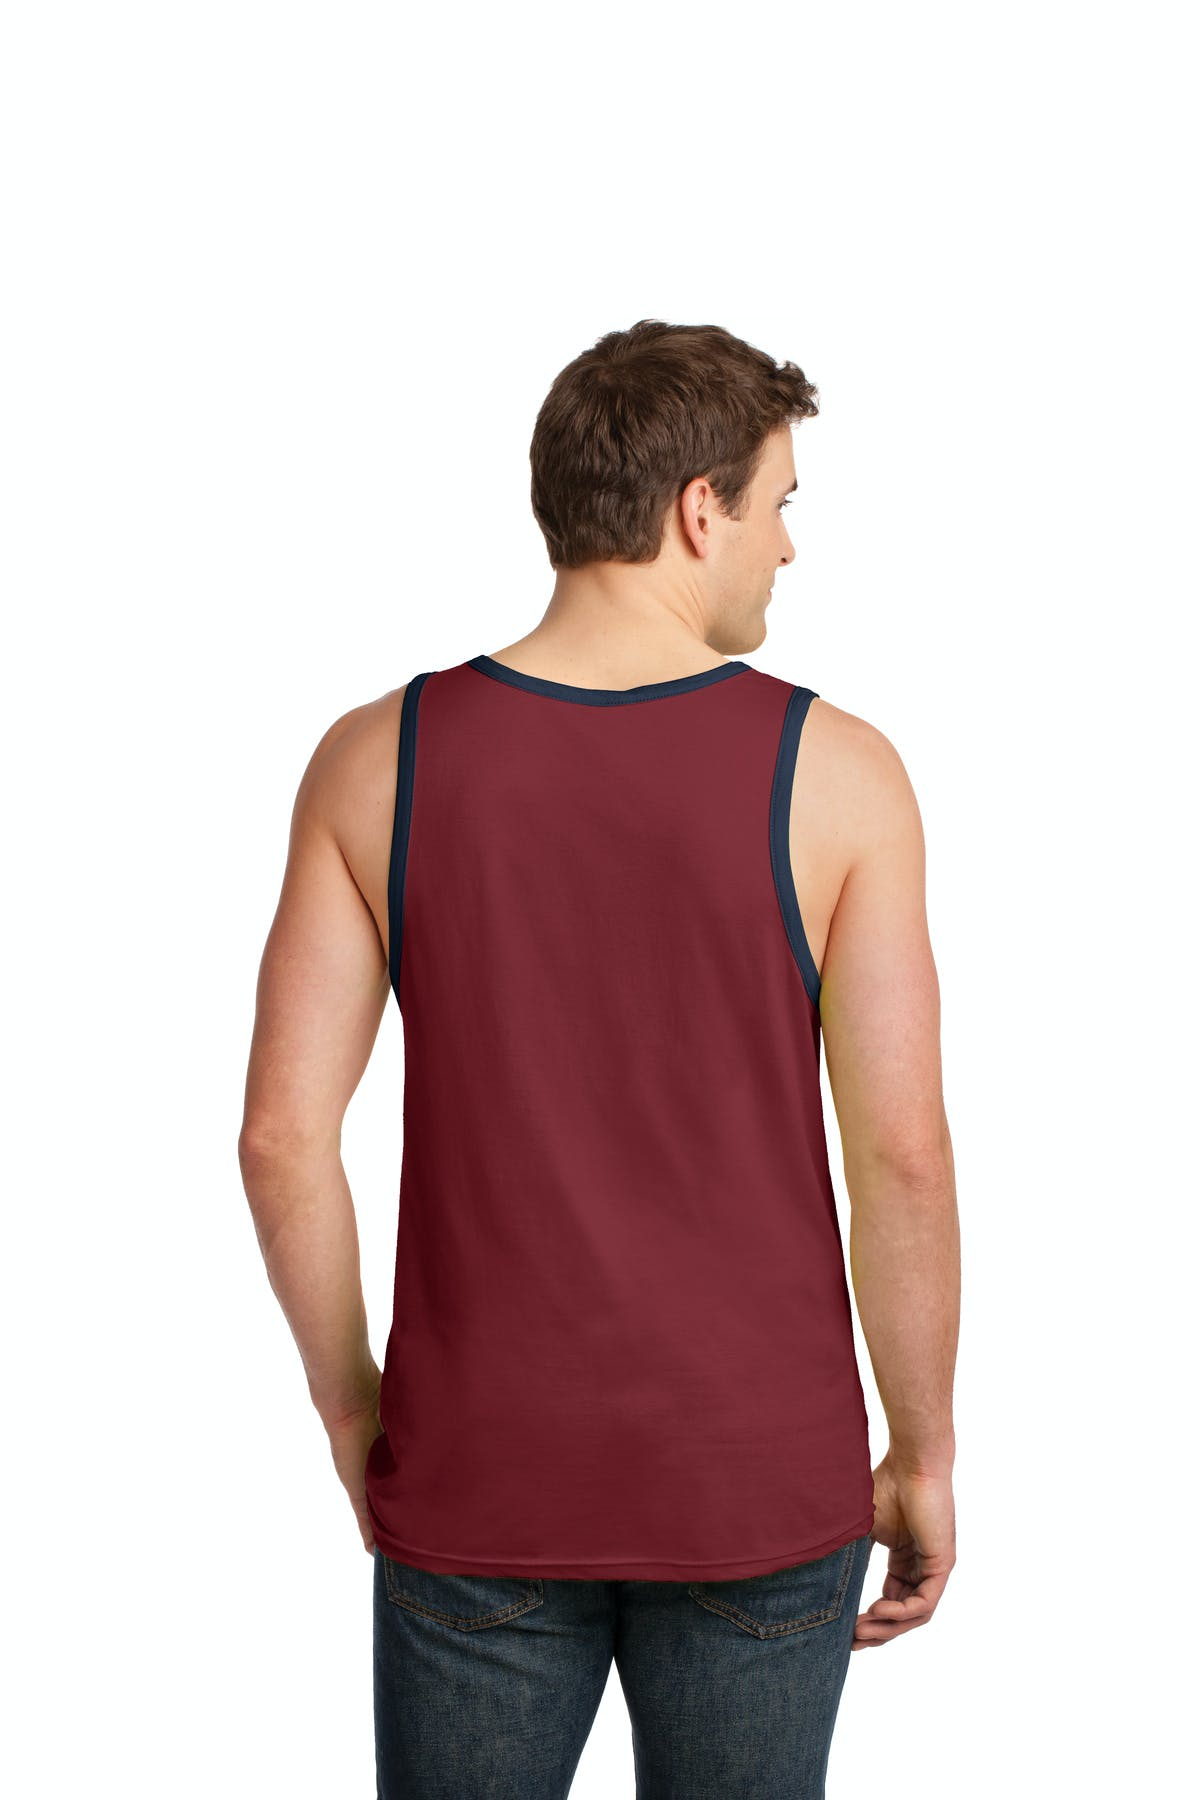 Anvil® 100% Combed Ring Spun Cotton Tank Top - sold by PRINT CITY GRAPHICS, INC